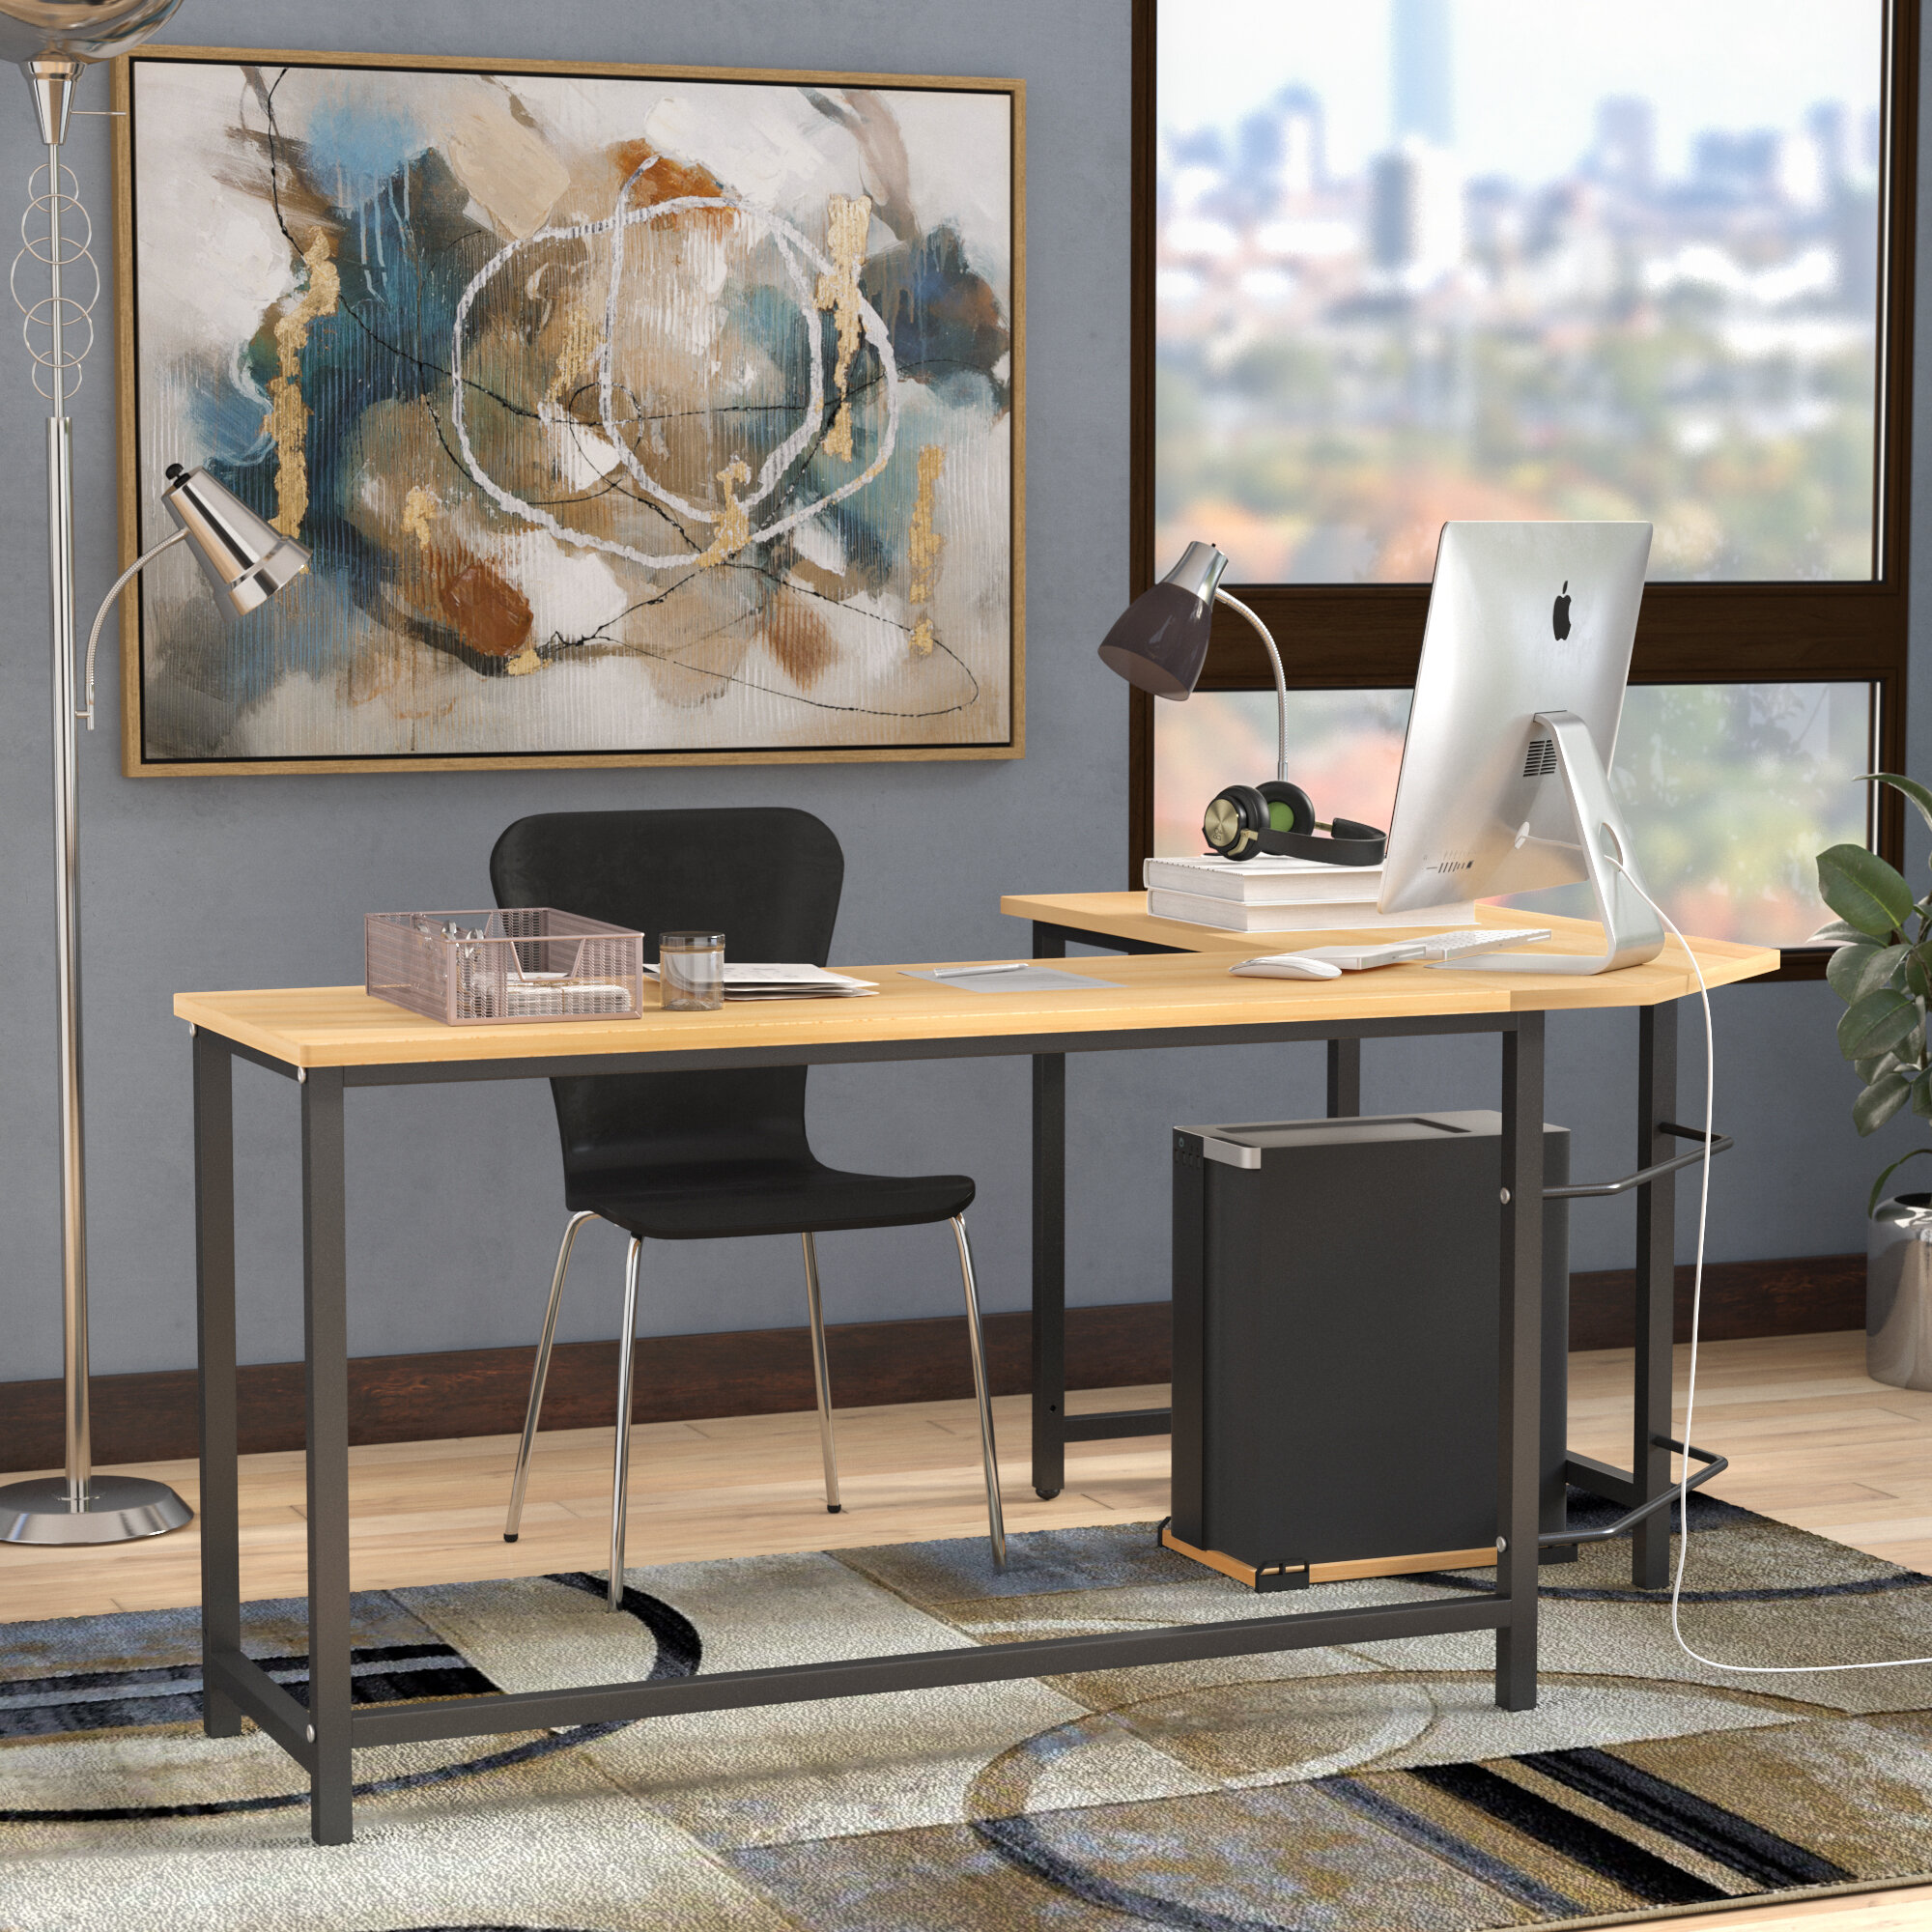 Ebern Designs Harkey L-Shaped Computer Desk & Reviews | Wayfair on office cubicles, office computers, office stools, office desks, office tables, office pens, office trash can, office reception, office lobby, office footrest, office lamps, office furniture, office beds, office counters, office bookcases, office sofa sets, office kitchen, office accessories, office employees, office couch,